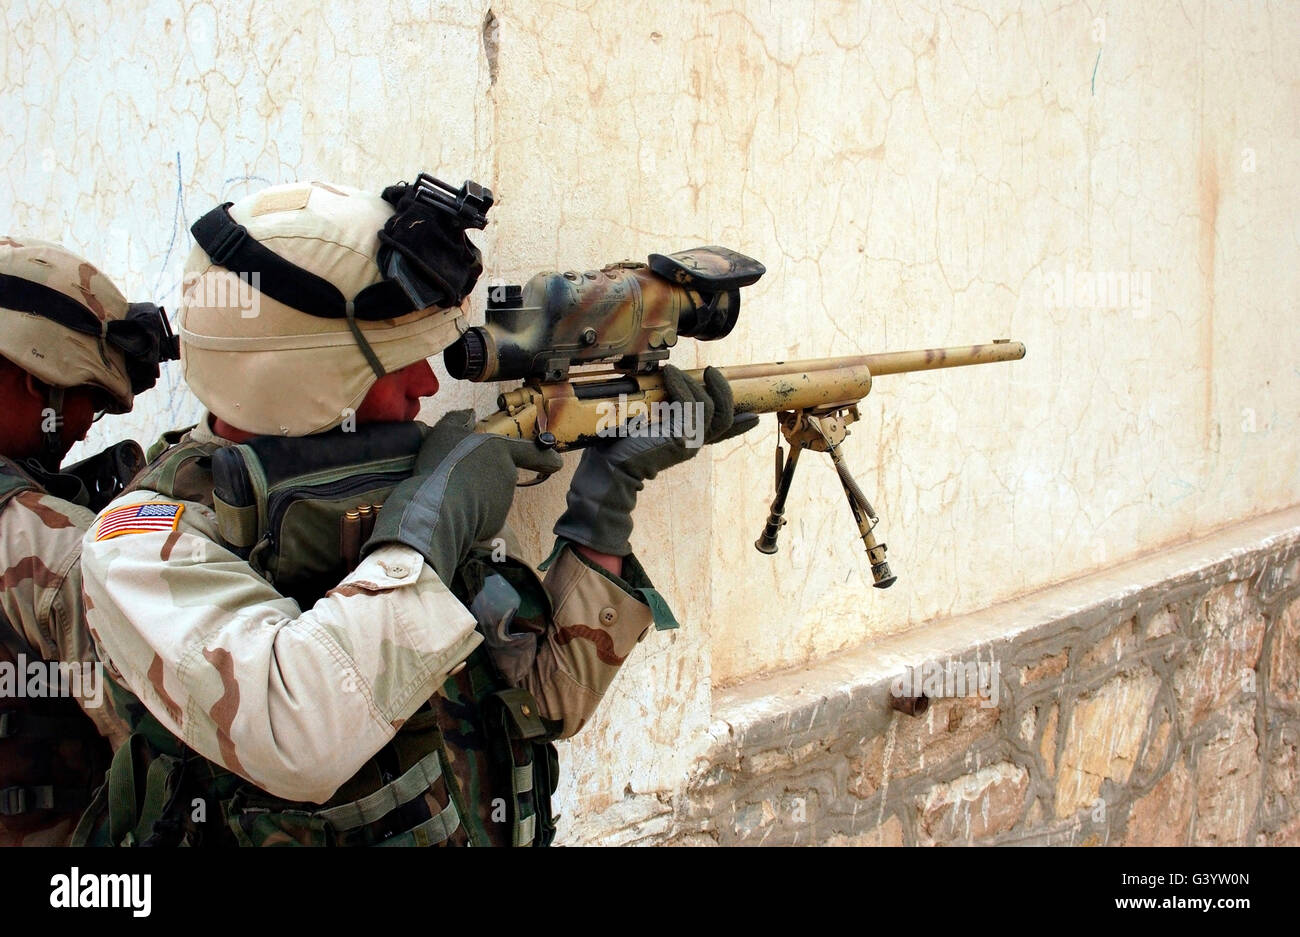 U.S. Army Sniper sights through his scope on his Harris M-86 sniper rifle. - Stock Image